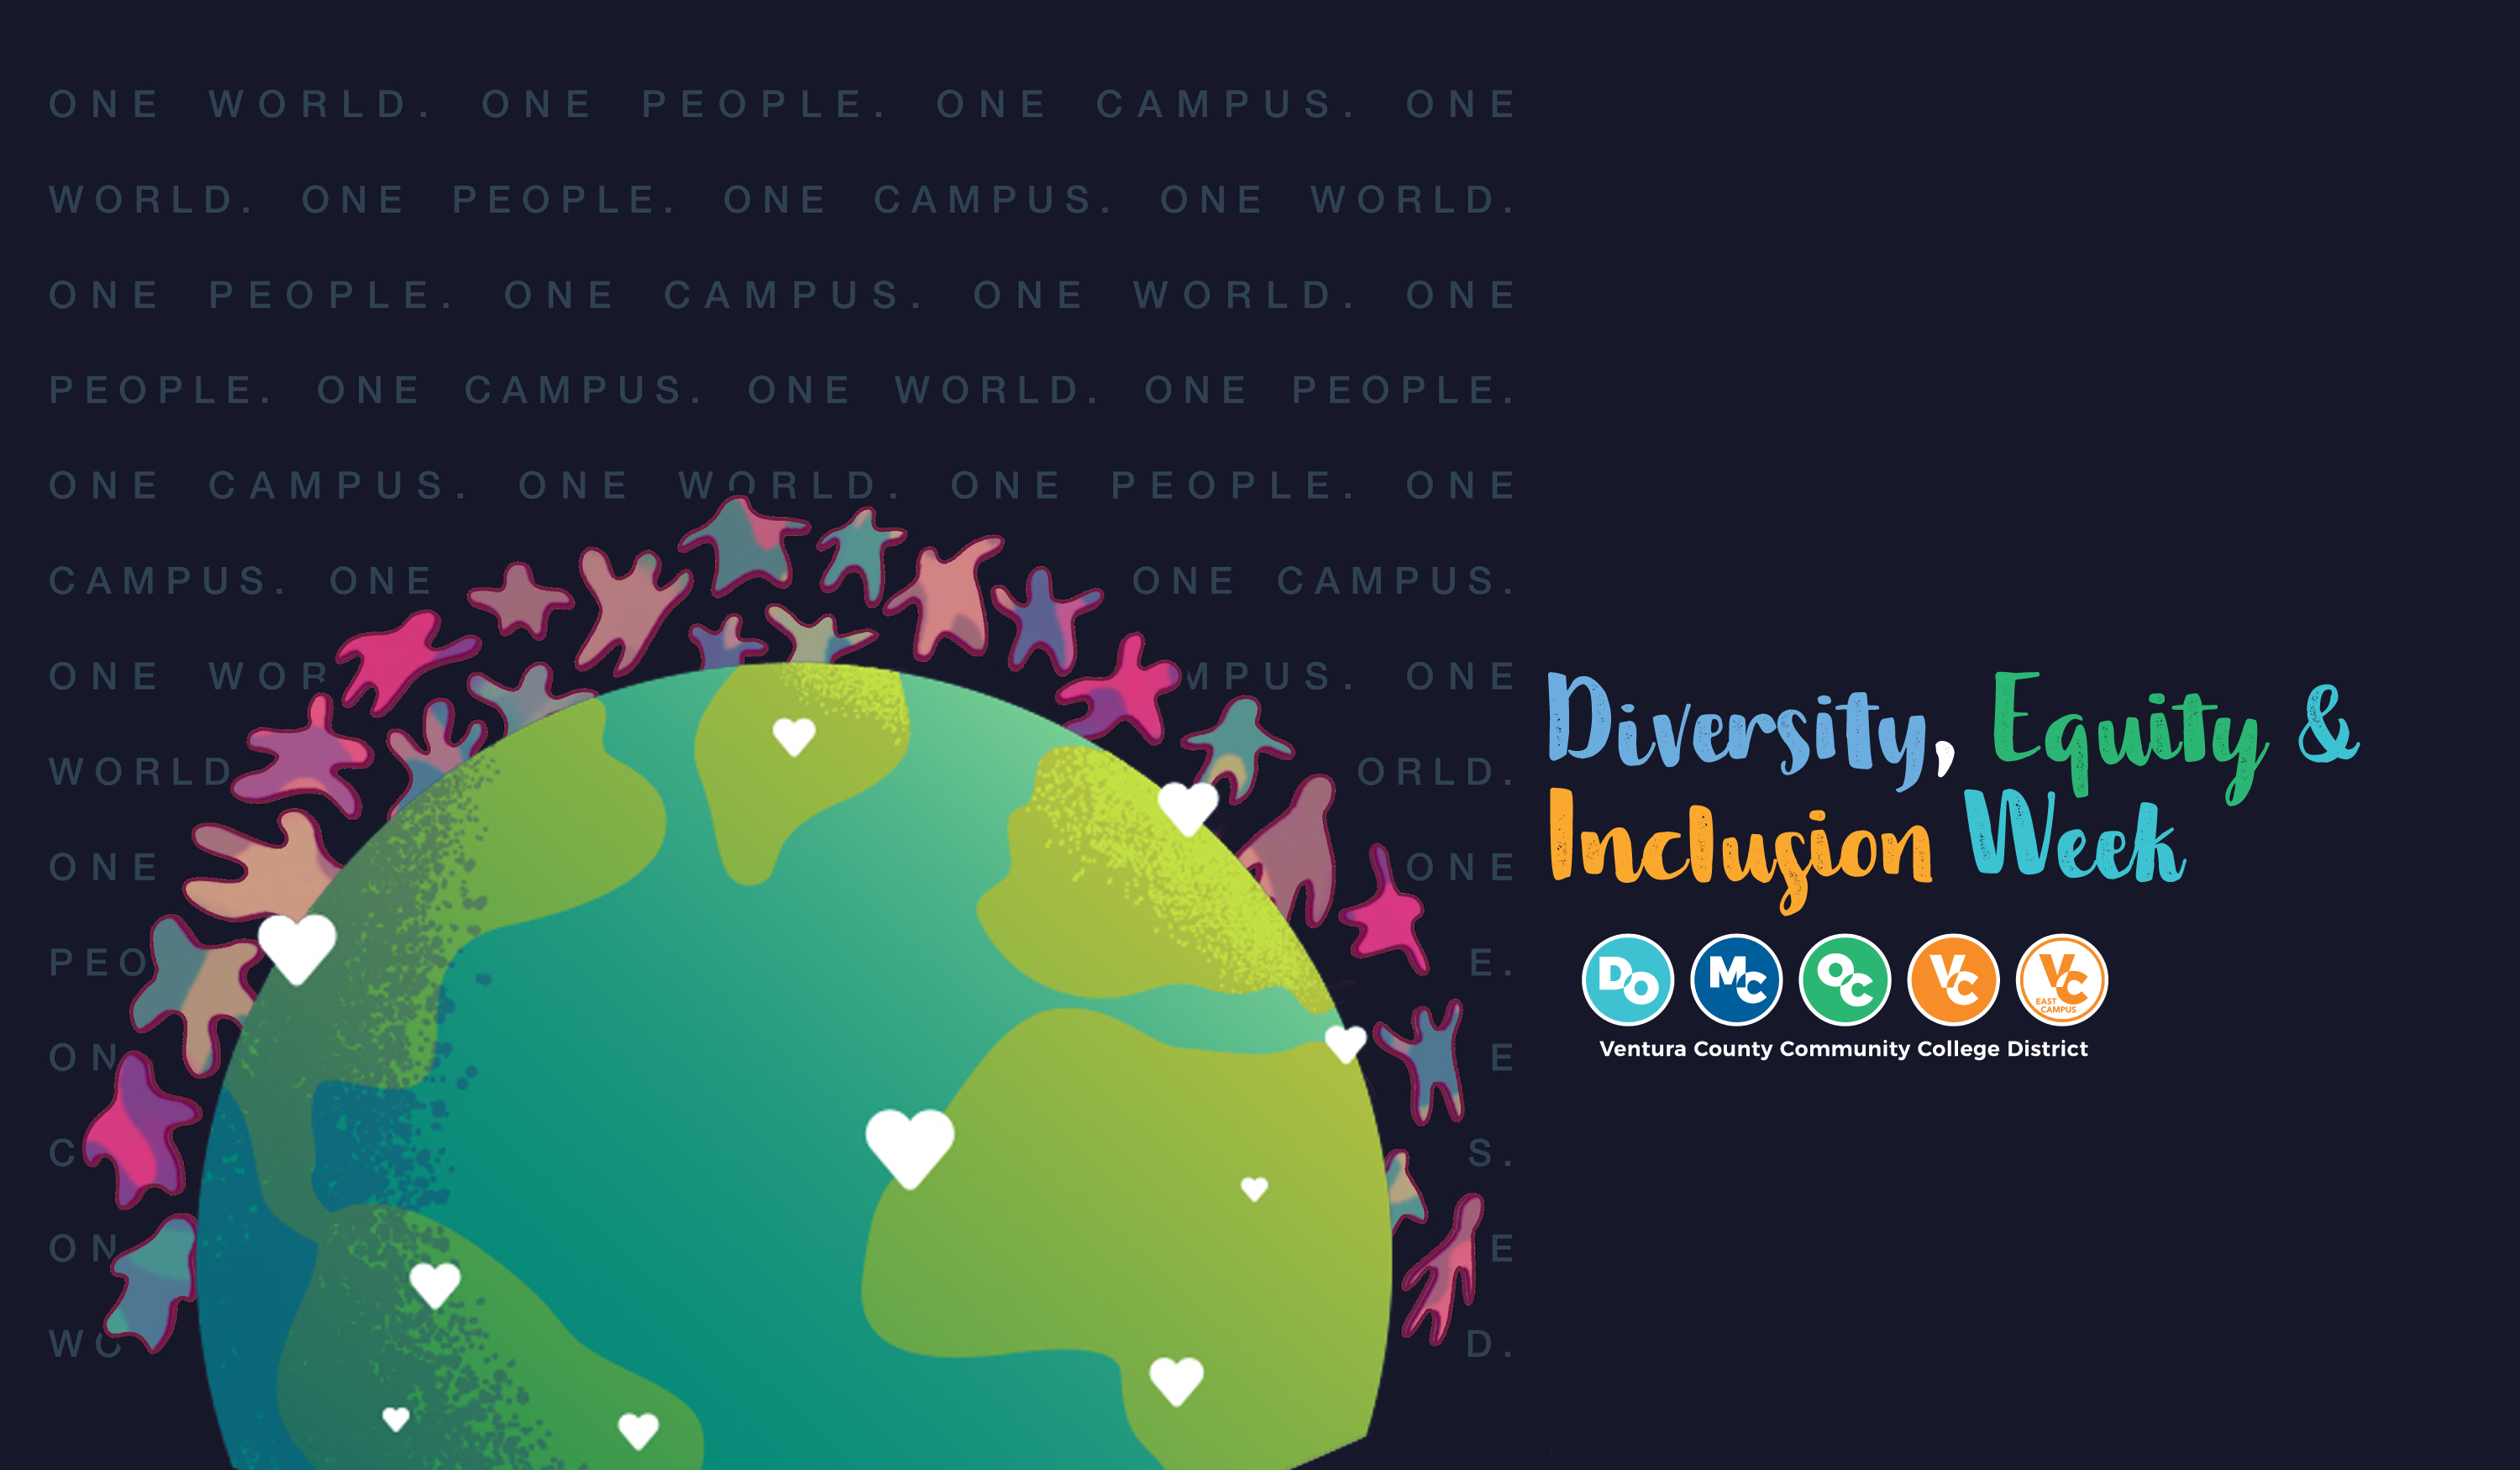 Diversity, Equity, and Inclusion Week